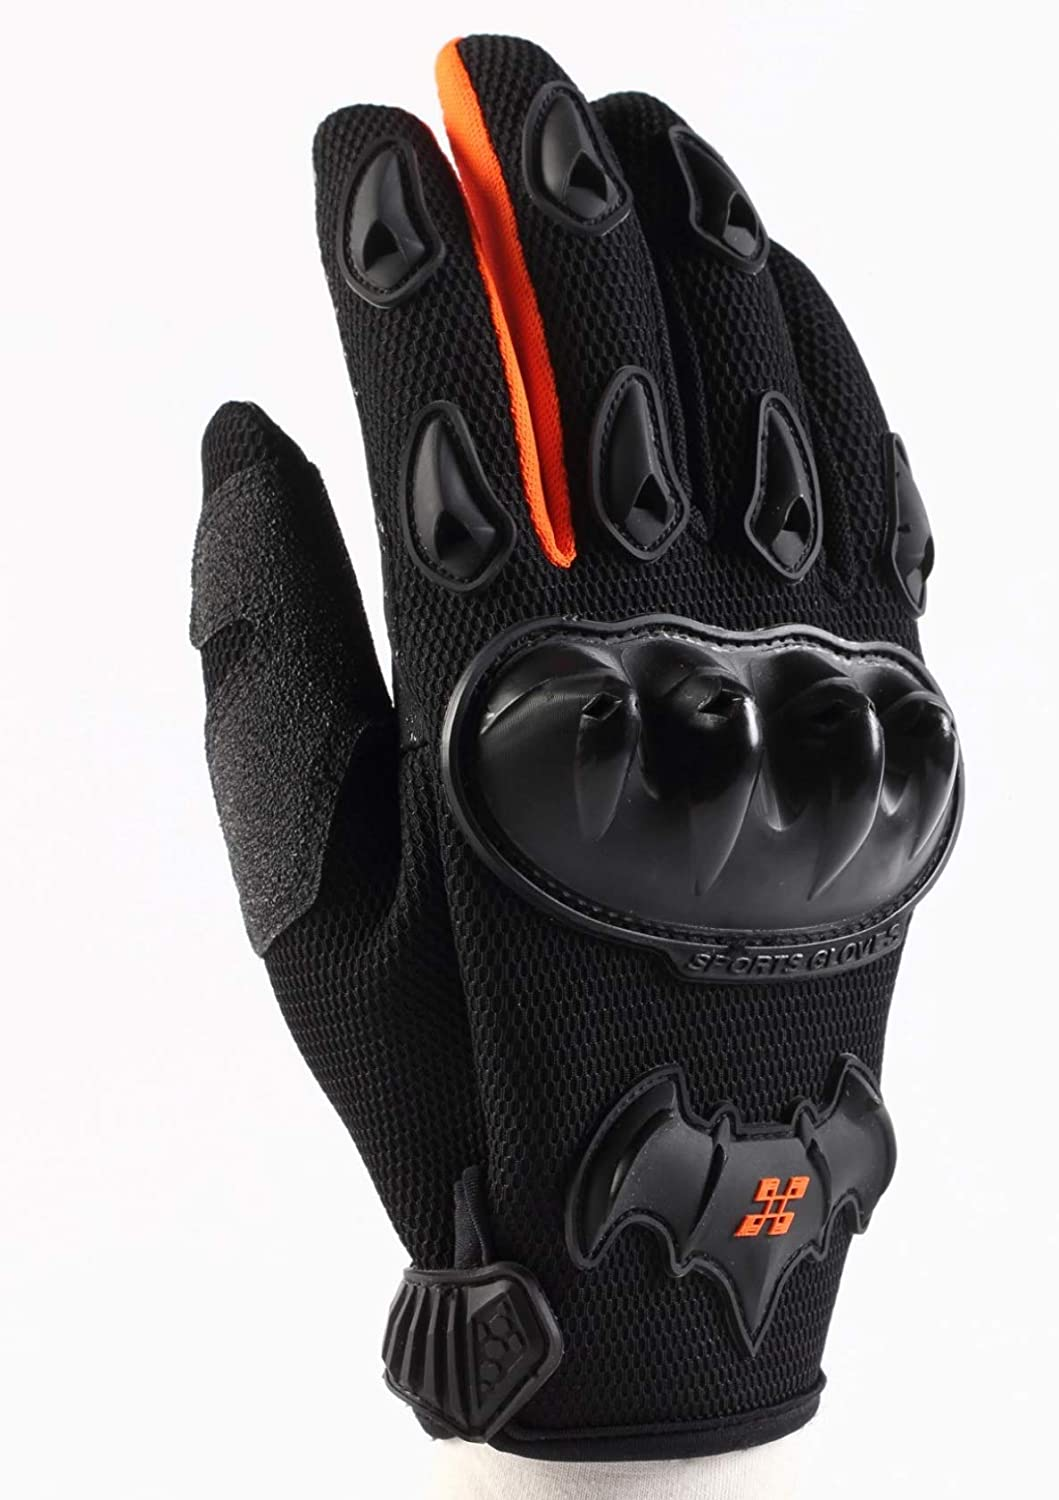 Black,M ARTOP Touch Screen Motorbike Anti-slip Anti-Collision Gloves for Men Motorcycle Gloves